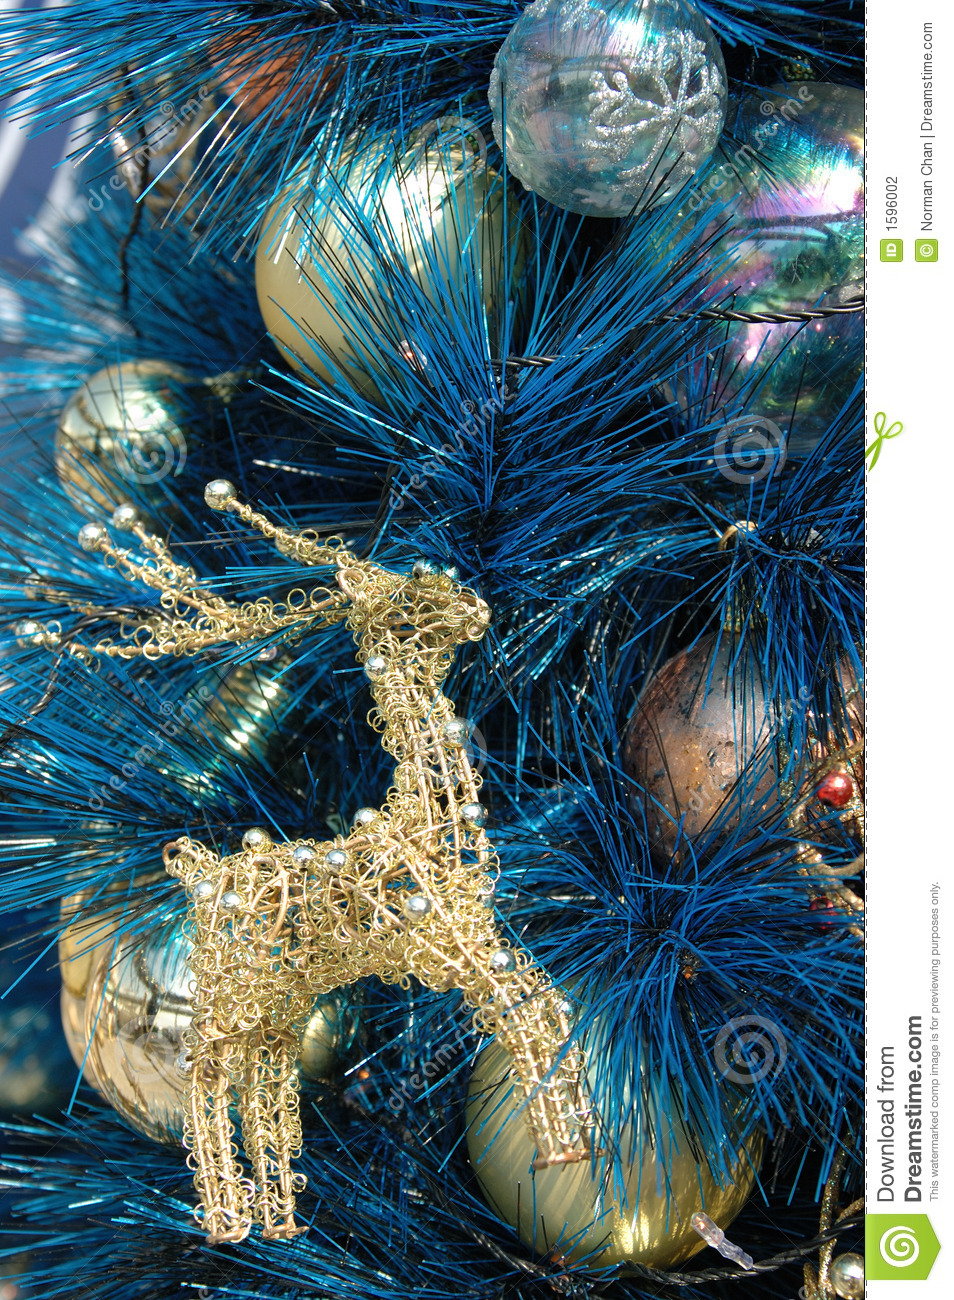 Blue and gold christmas tree decorations - Golden Deer Ornament On Blue Christmas Tree Stock Photography